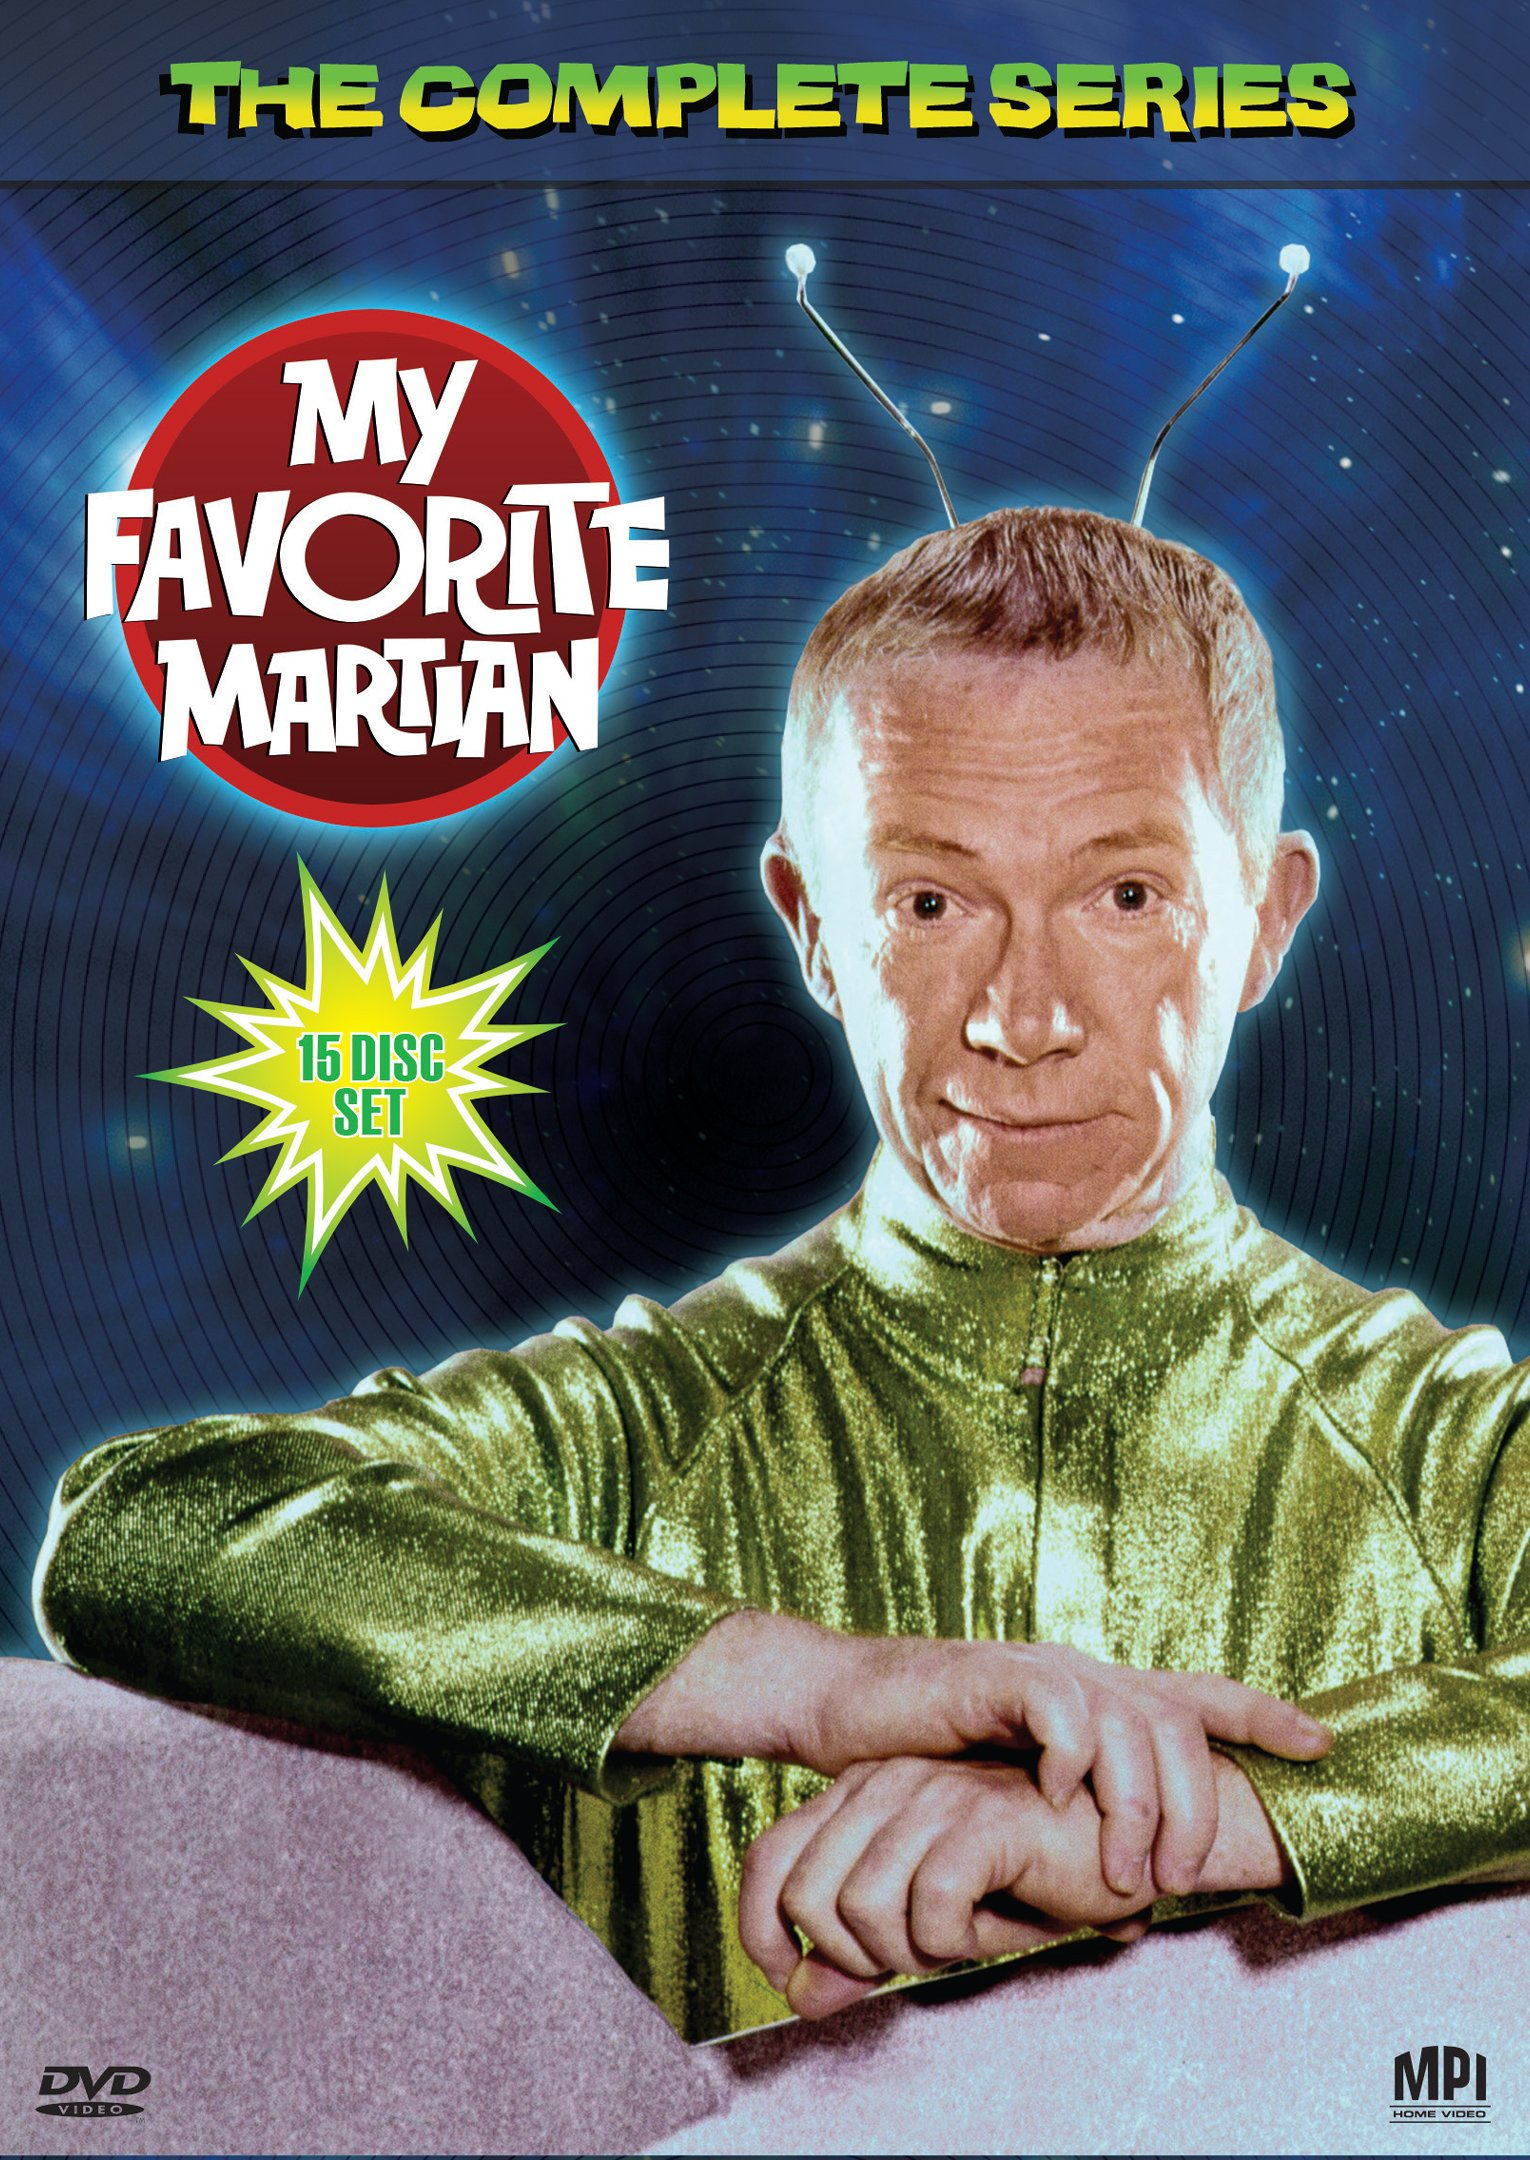 My Favorite Martian: Complete Series by MPI HOME VIDEO